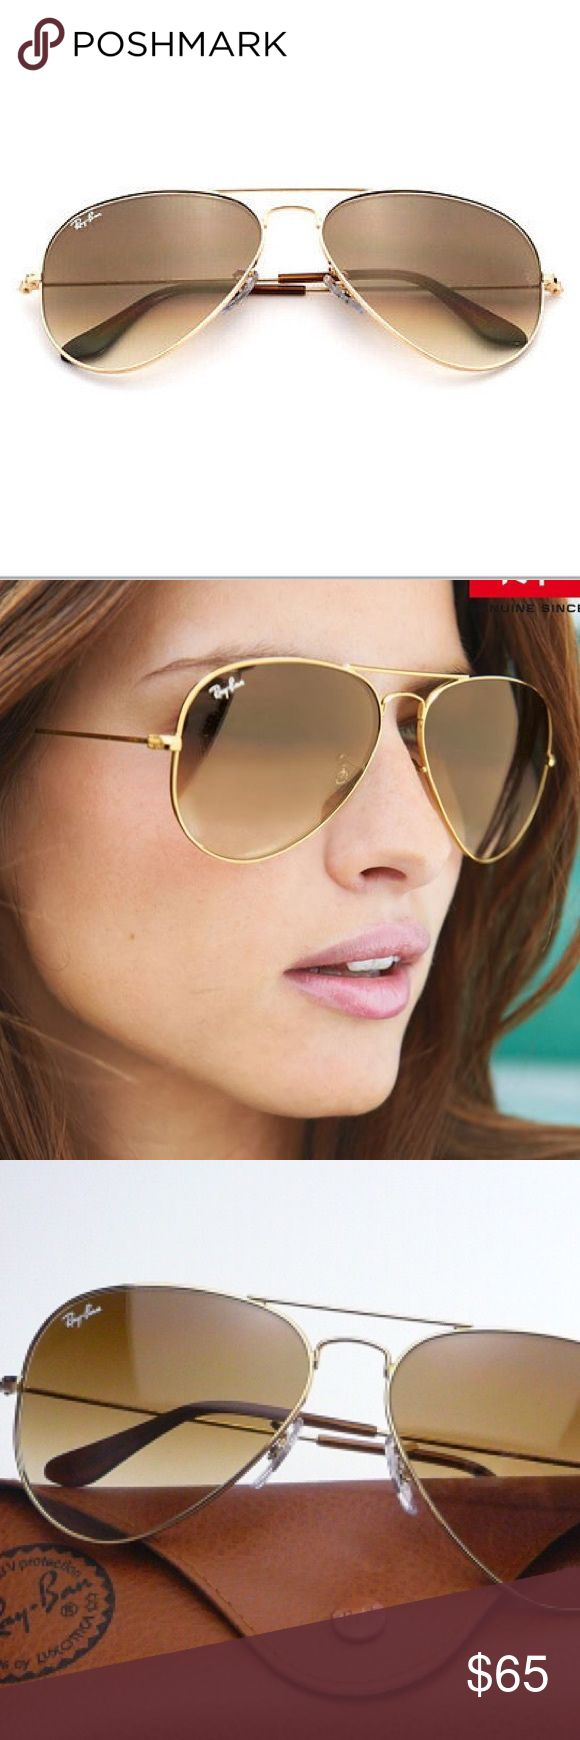 Ray-Ban Aviator Gold Brown Gradient RB3025 001/51 Ray-Ban Aviator Gradient sunglasses encompass the teardrop shape that started it all. Originally designed for U.S. aviators, the Aviator Sunglasses design has become an icon. The gradient lenses are nicely toned and give a cool effect to what is considered the sunglass that shaped entire cult movements. Wear RB3025 Aviator Gradient sunglasses with a gunmetal frame and lens treatments including crystal Polarized Sunglasses blue gradient…